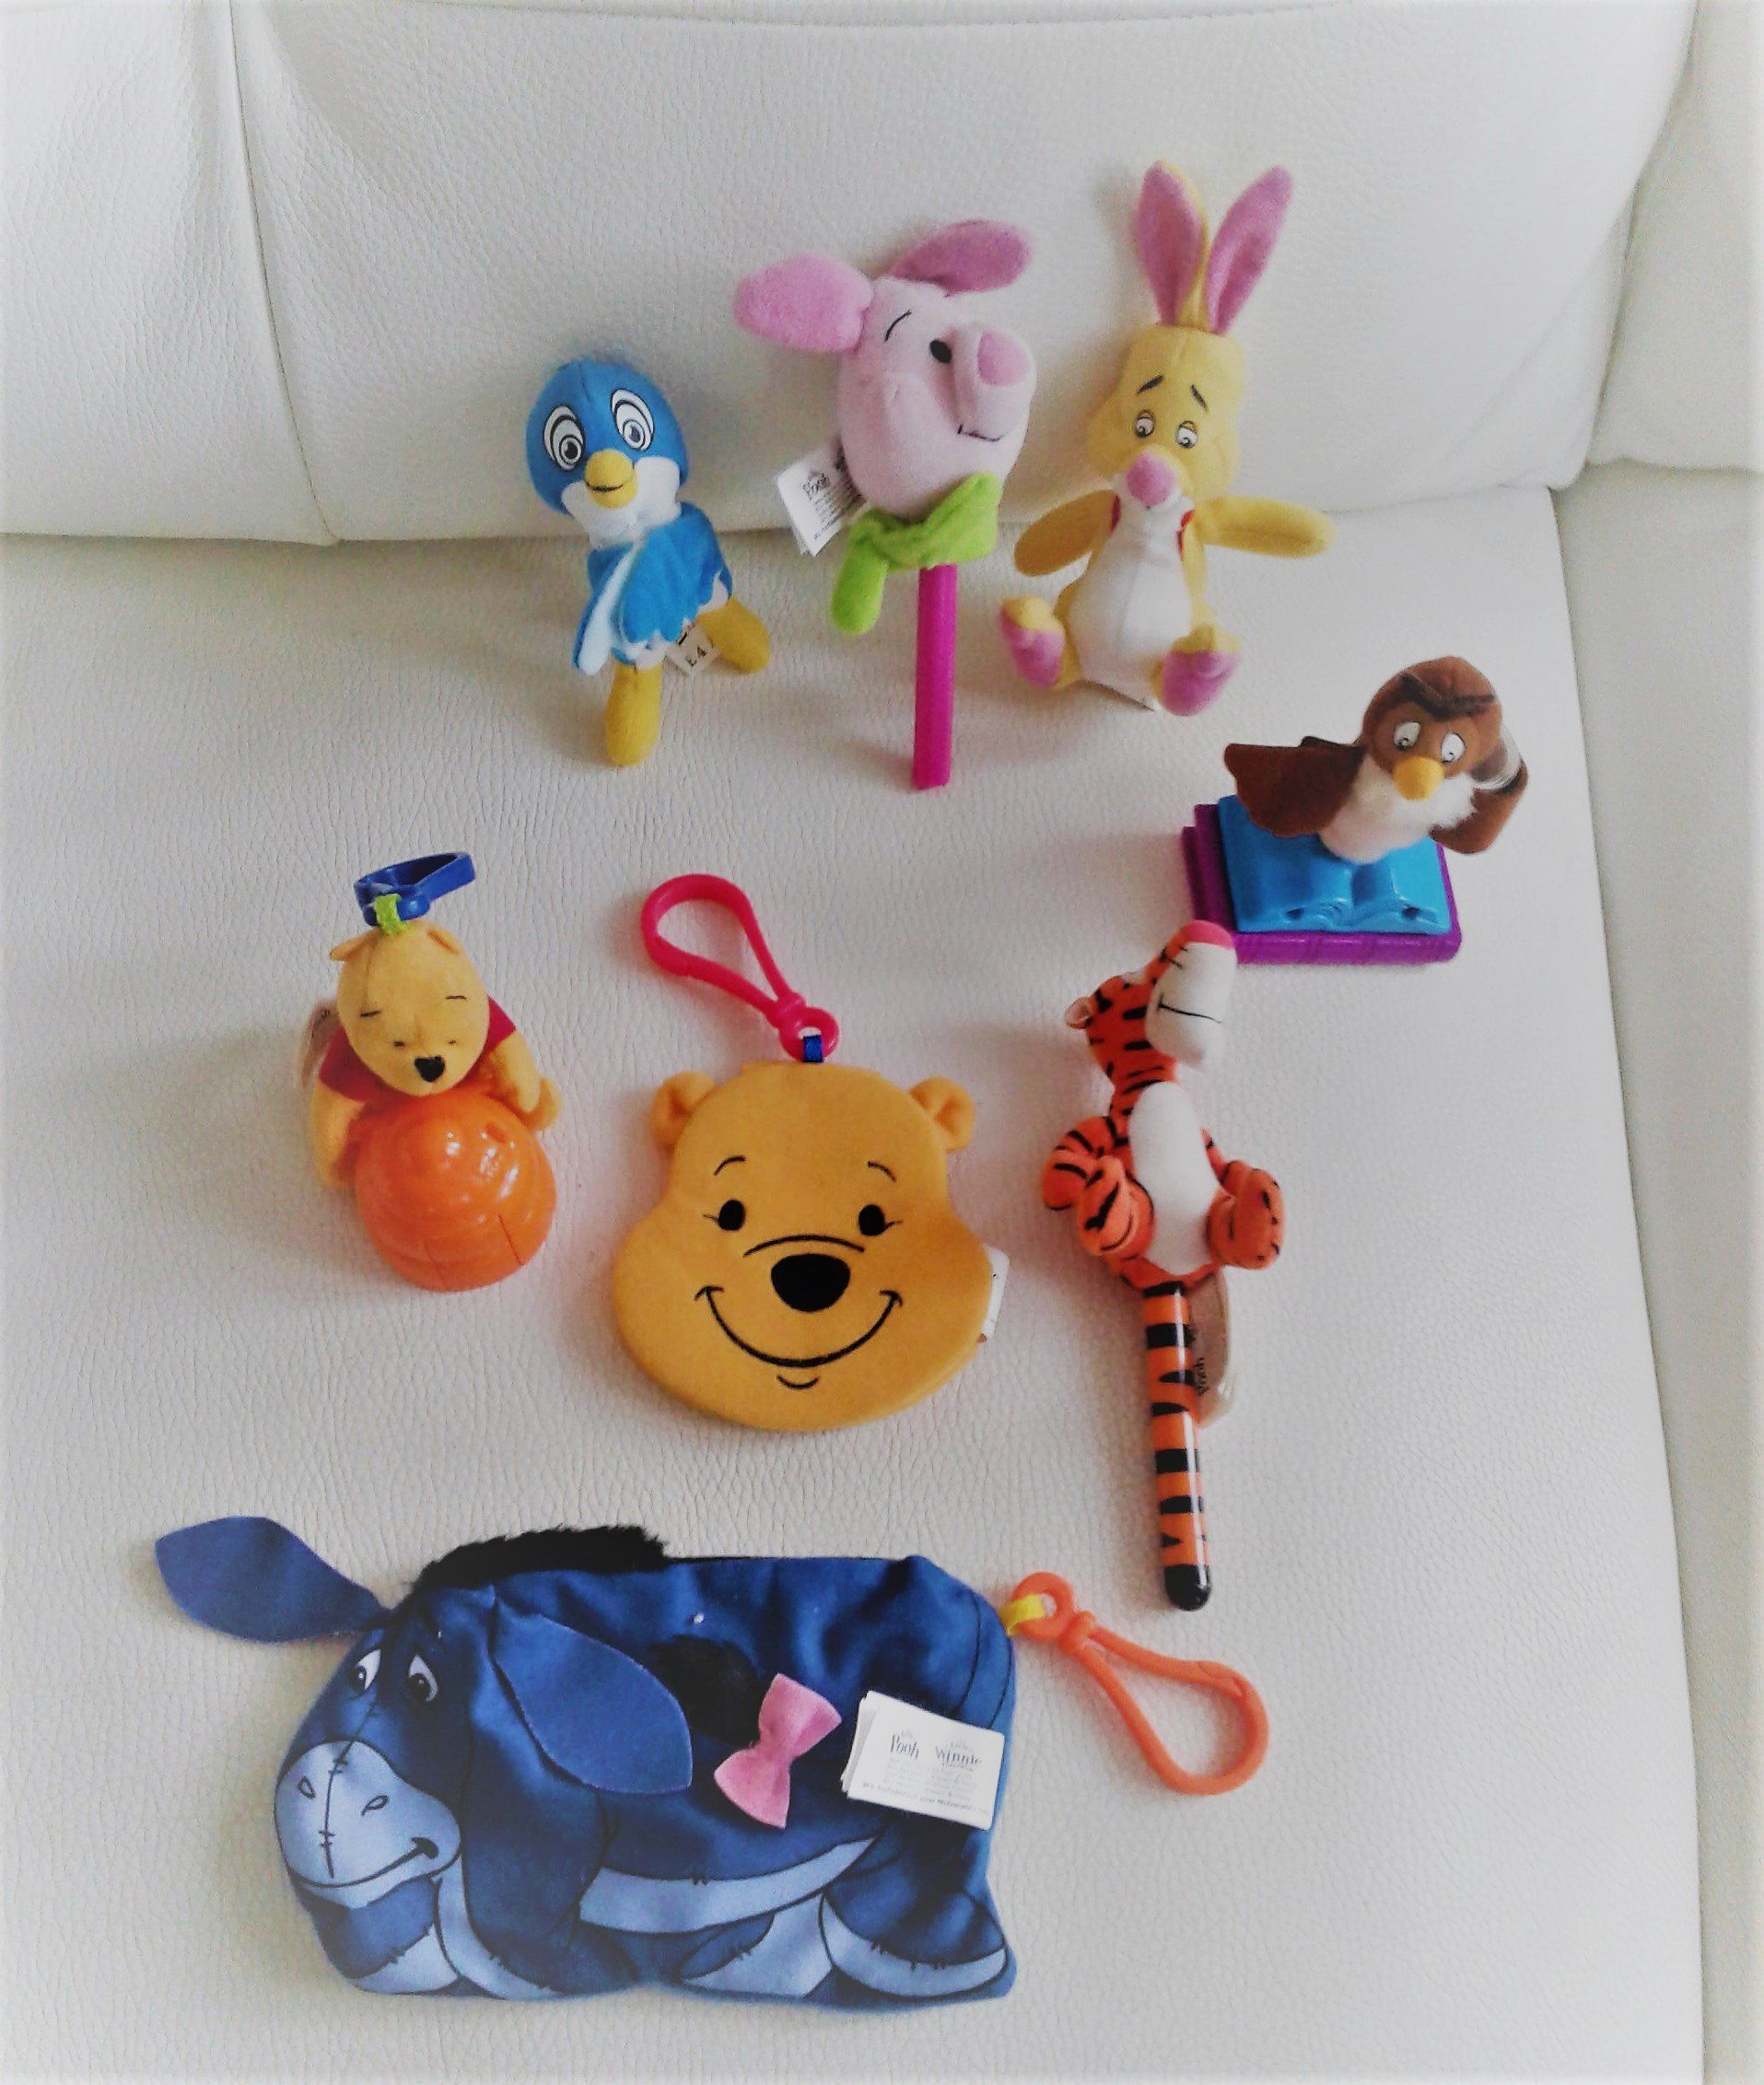 Vintage THe book of Pooh: Winnie the Pooh SET of 8 Toys | Etsy | Happy meal  toys, Mcdonalds toys, Happy meal mcdonalds